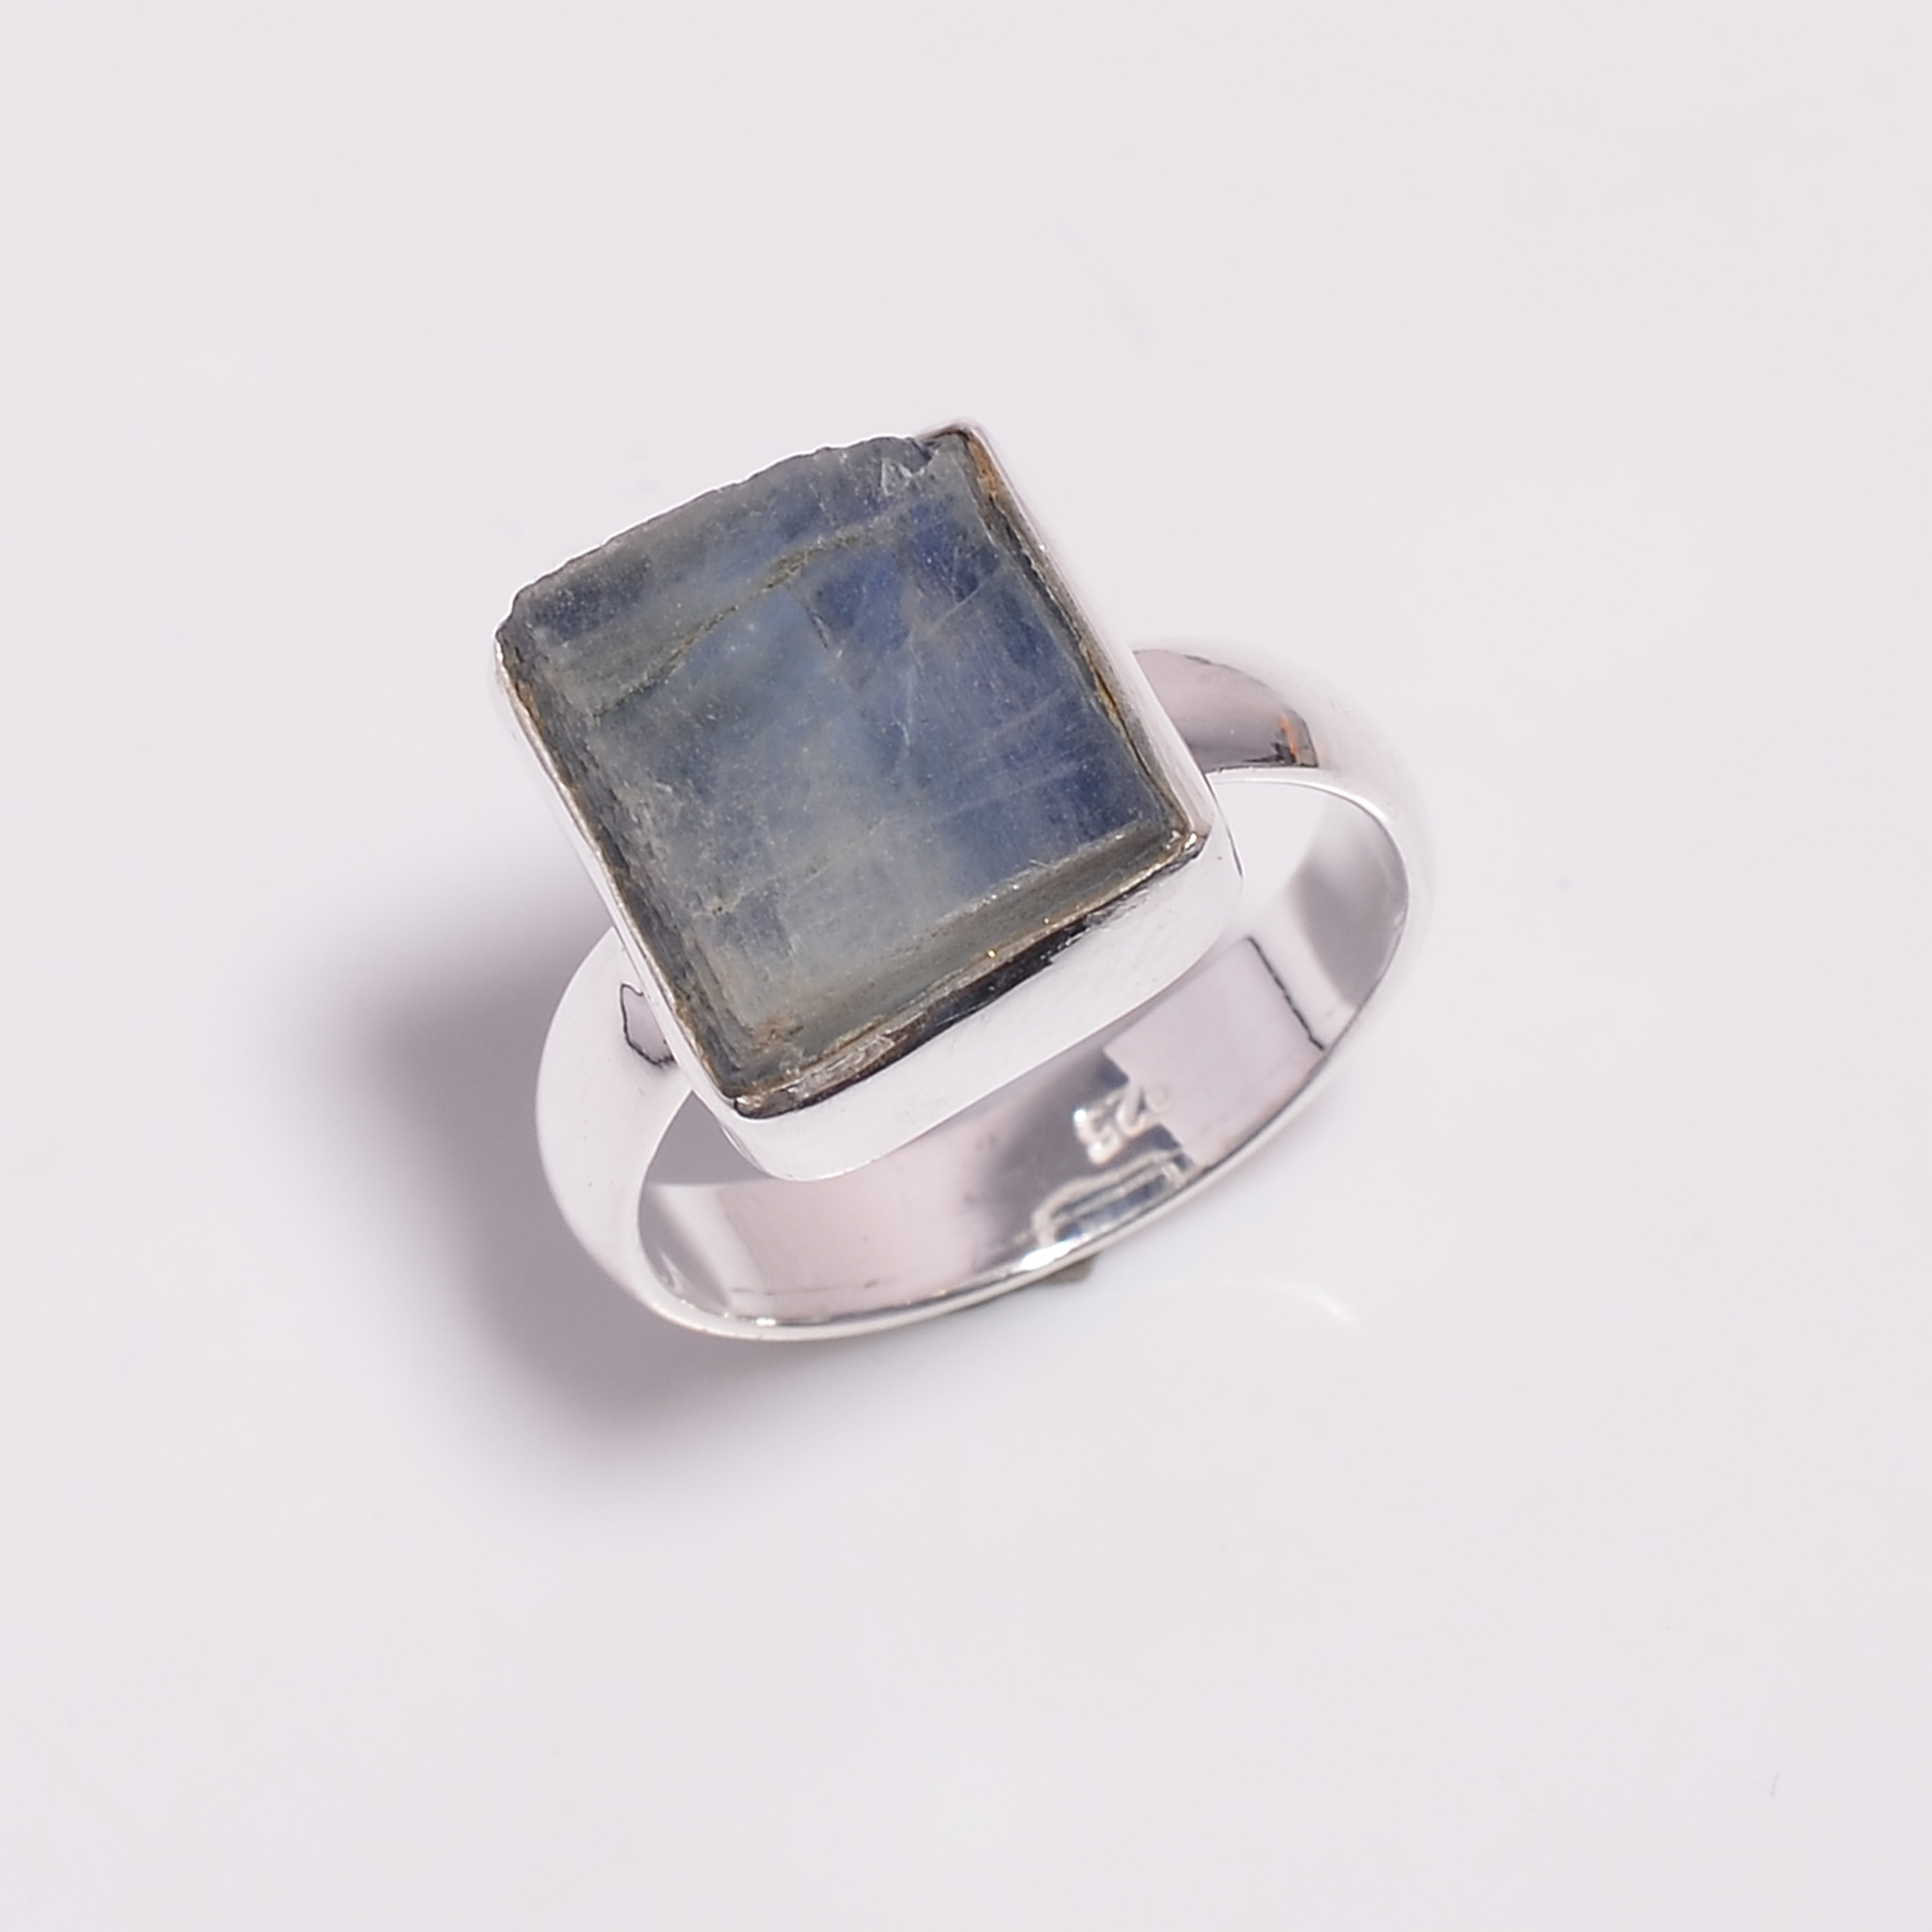 Raw Blue Kyanite Gemstone 925 Sterling Silver Ring Size US 7.75